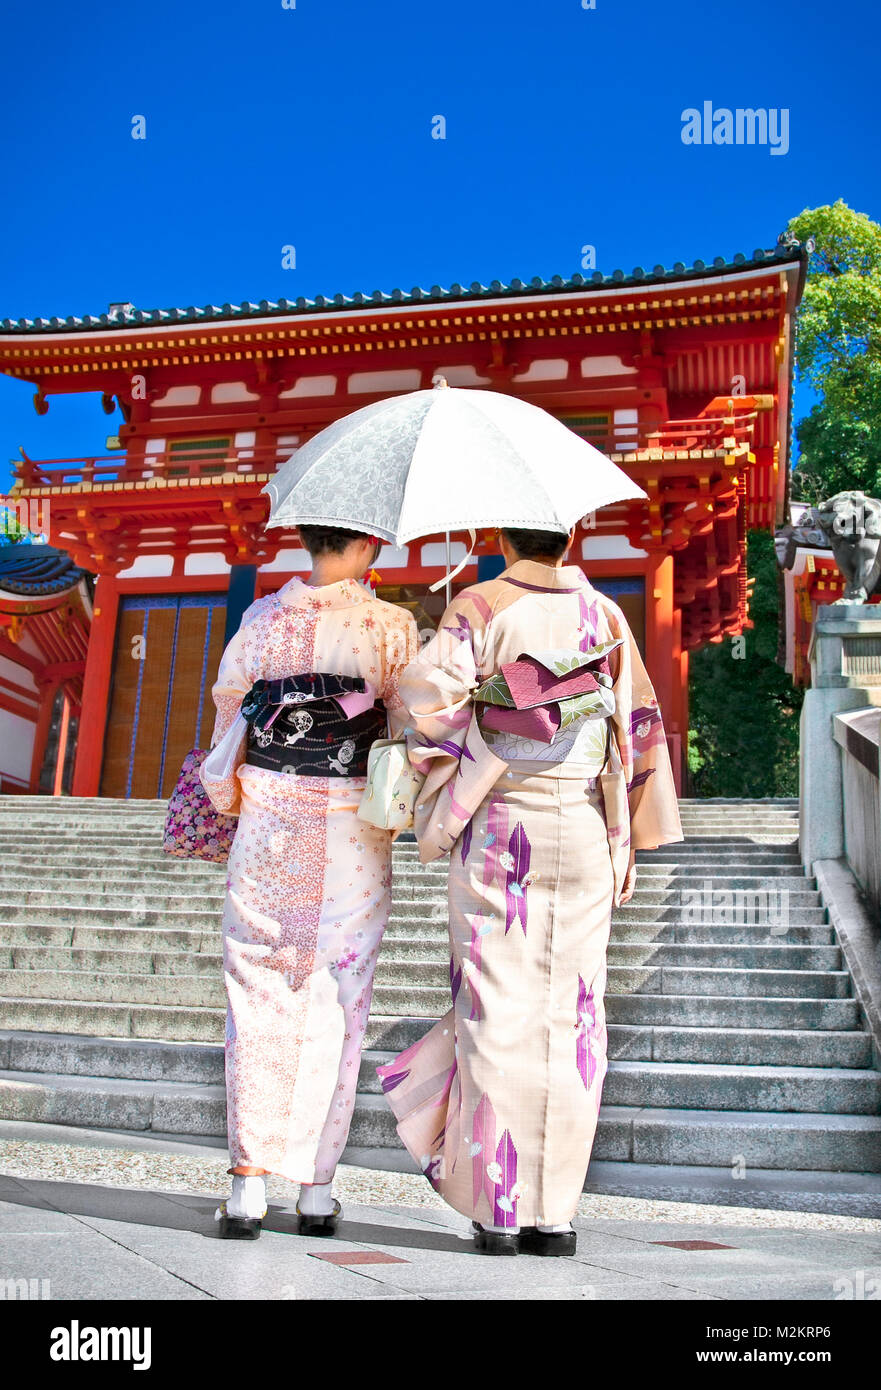 Japanese girls with Japanese traditional suit (Yukata) are walking in the Yasaka-jinja  shrine in Kyoto, Japan. - Stock Image